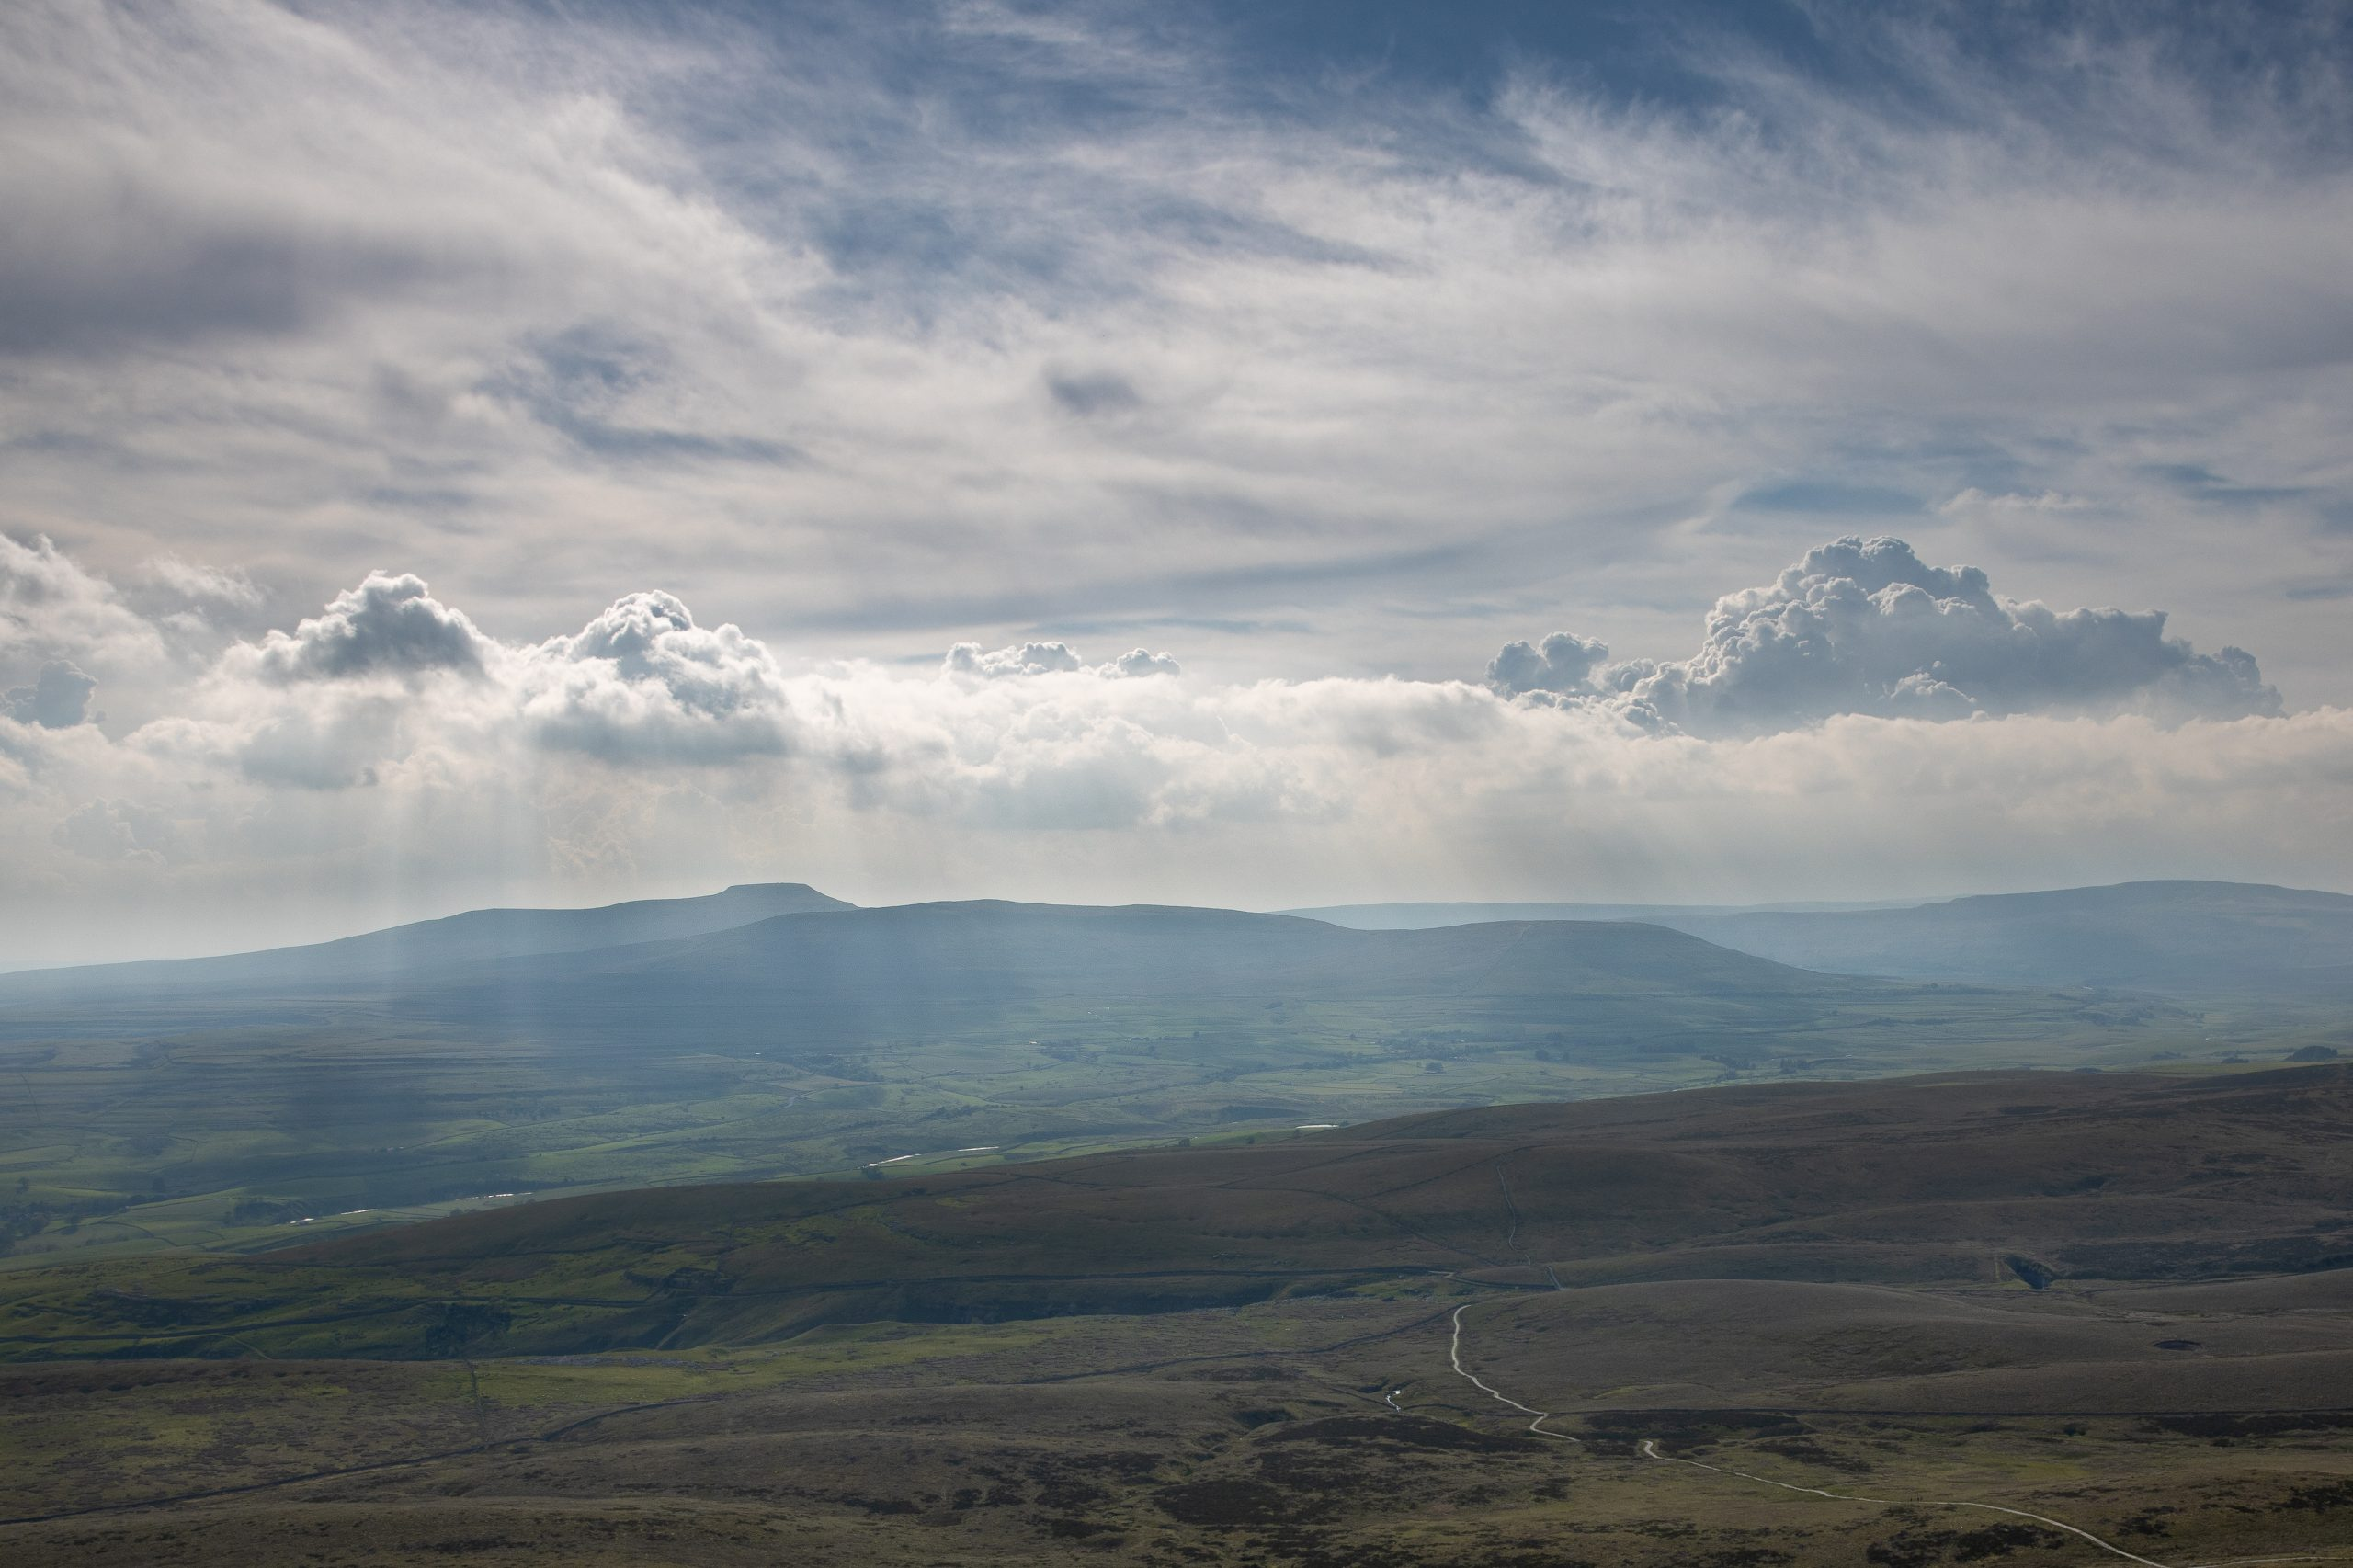 A dramatic view across the Yorkshire Dales from pen y Ghent to Ingleborough with light breaking through some storm clouds